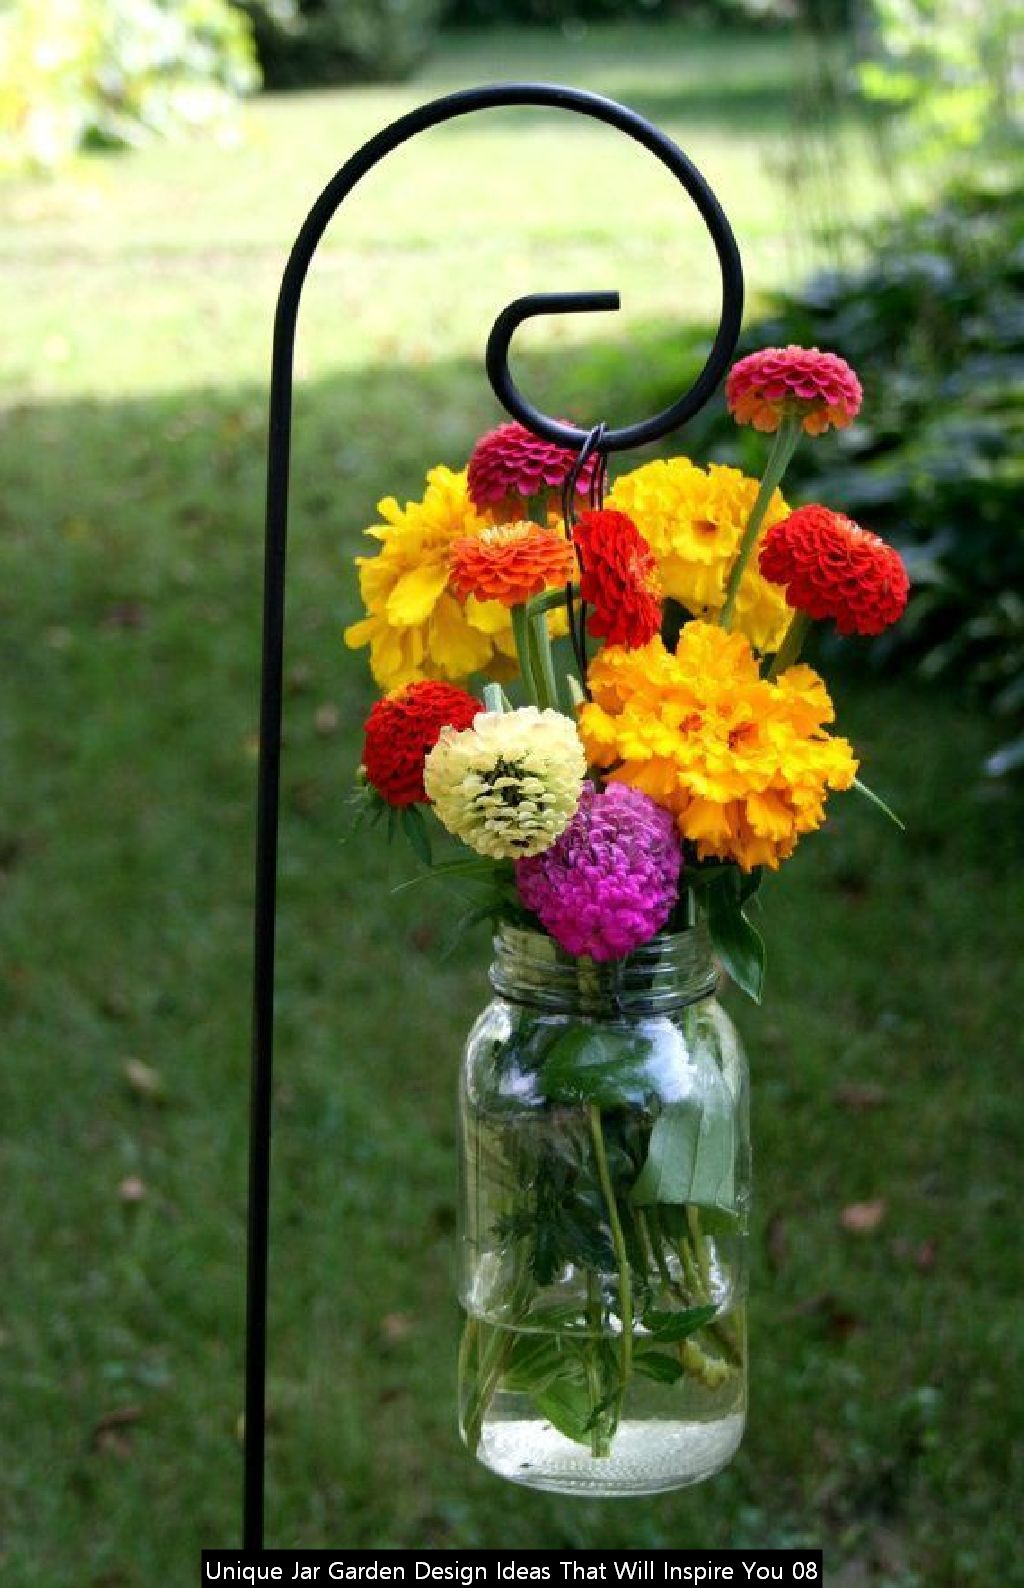 Unique Jar Garden Design Ideas That Will Inspire You 08